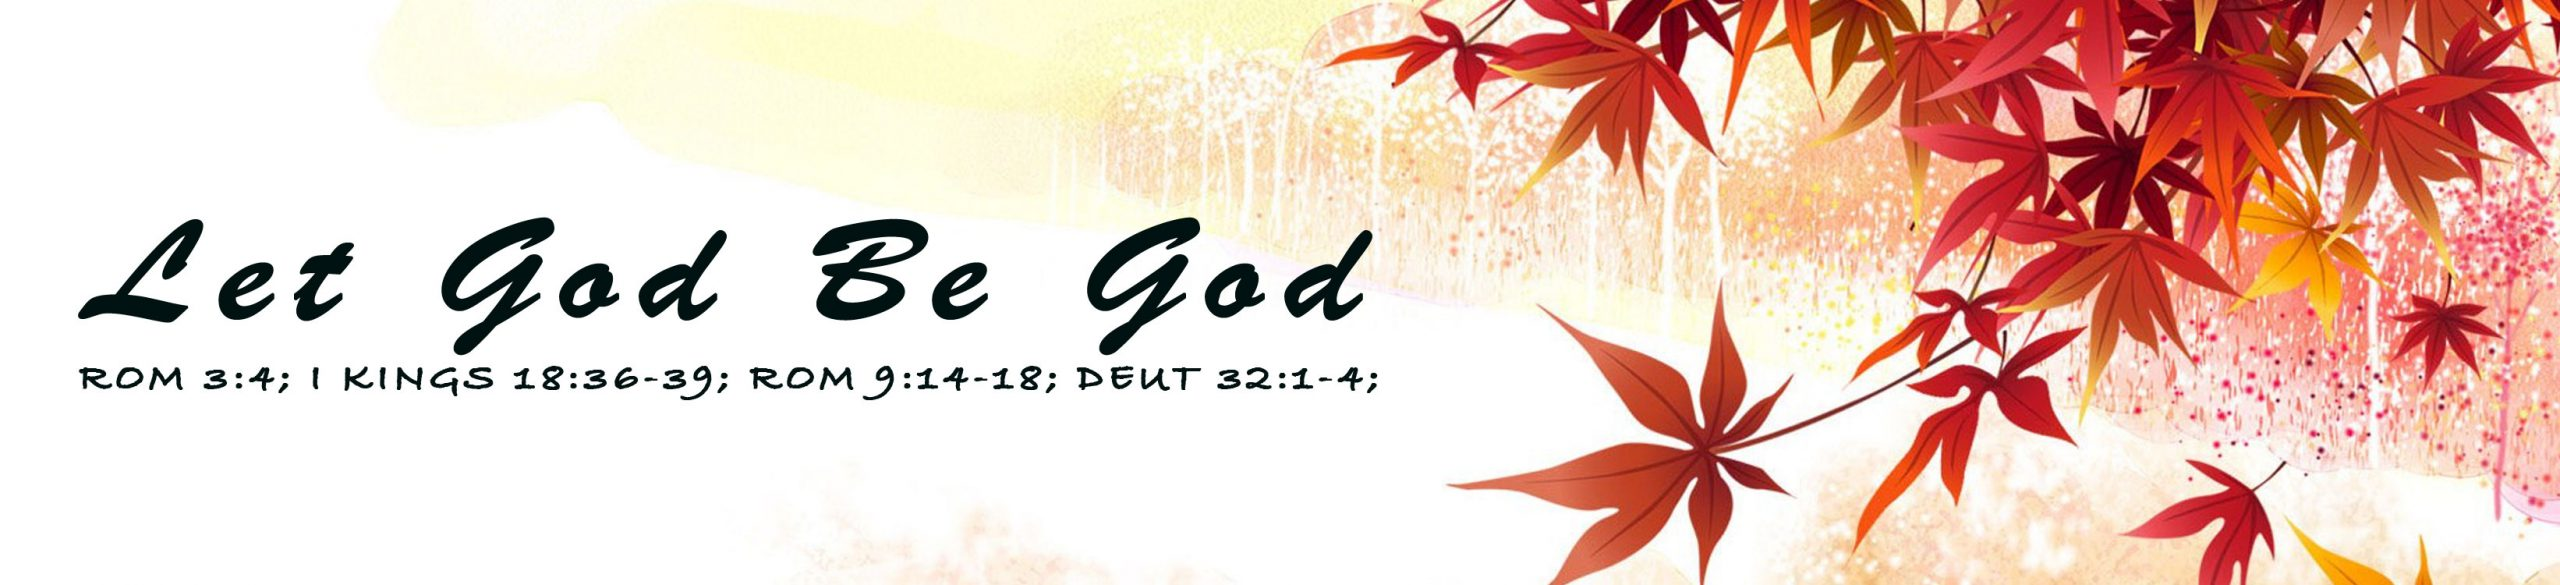 You are currently viewing Let God Be God